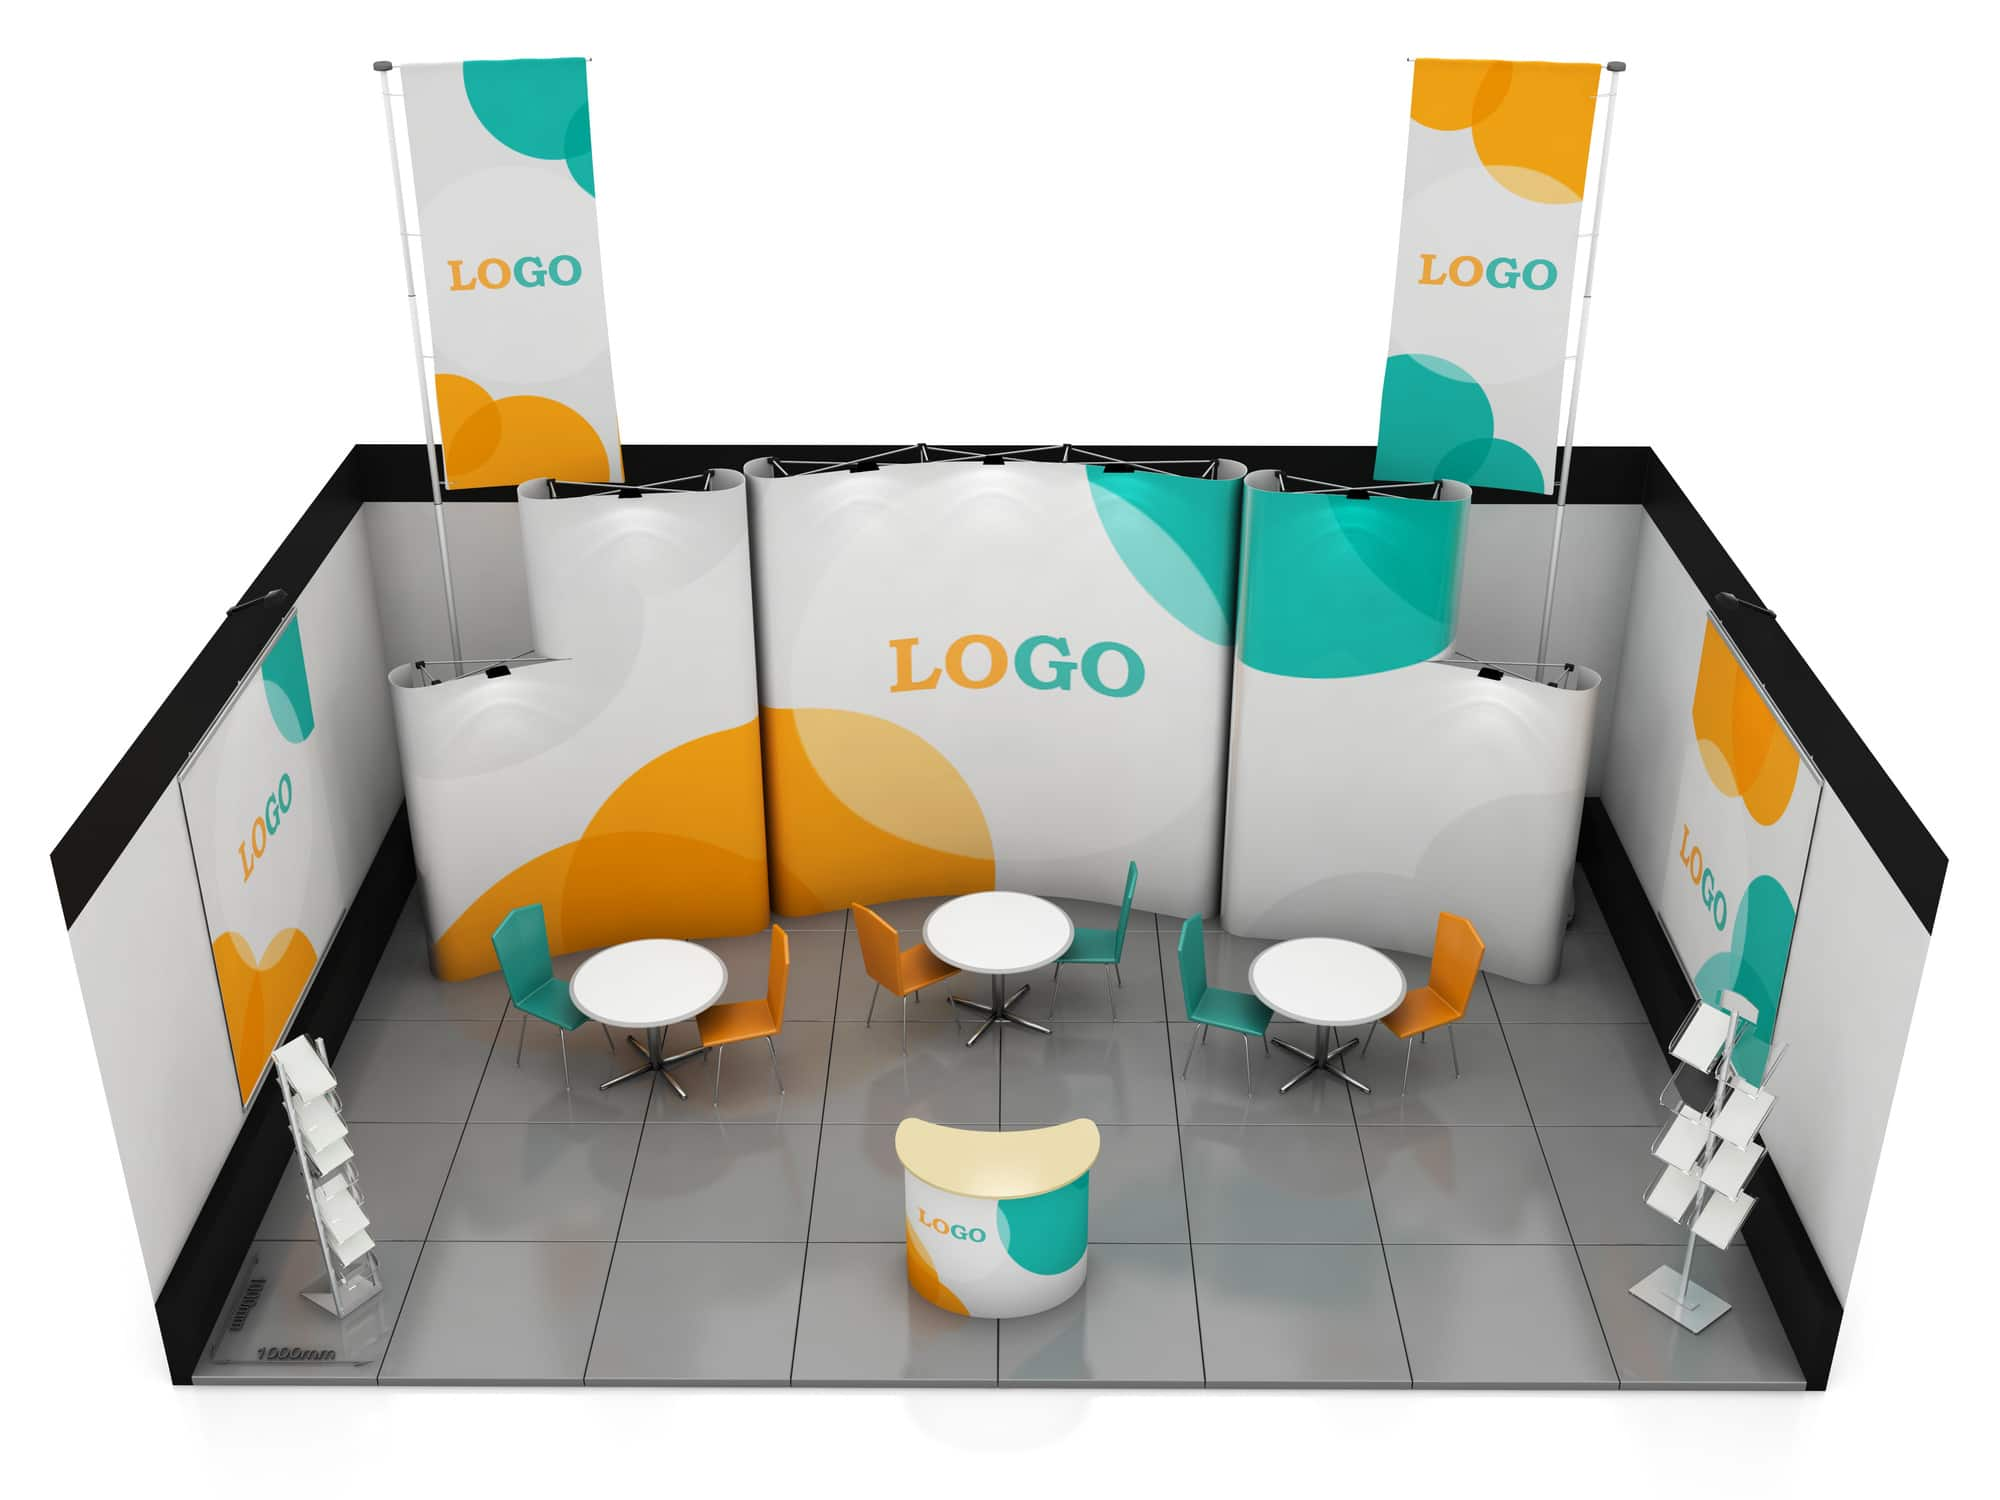 trade show booth ideas for small budgets